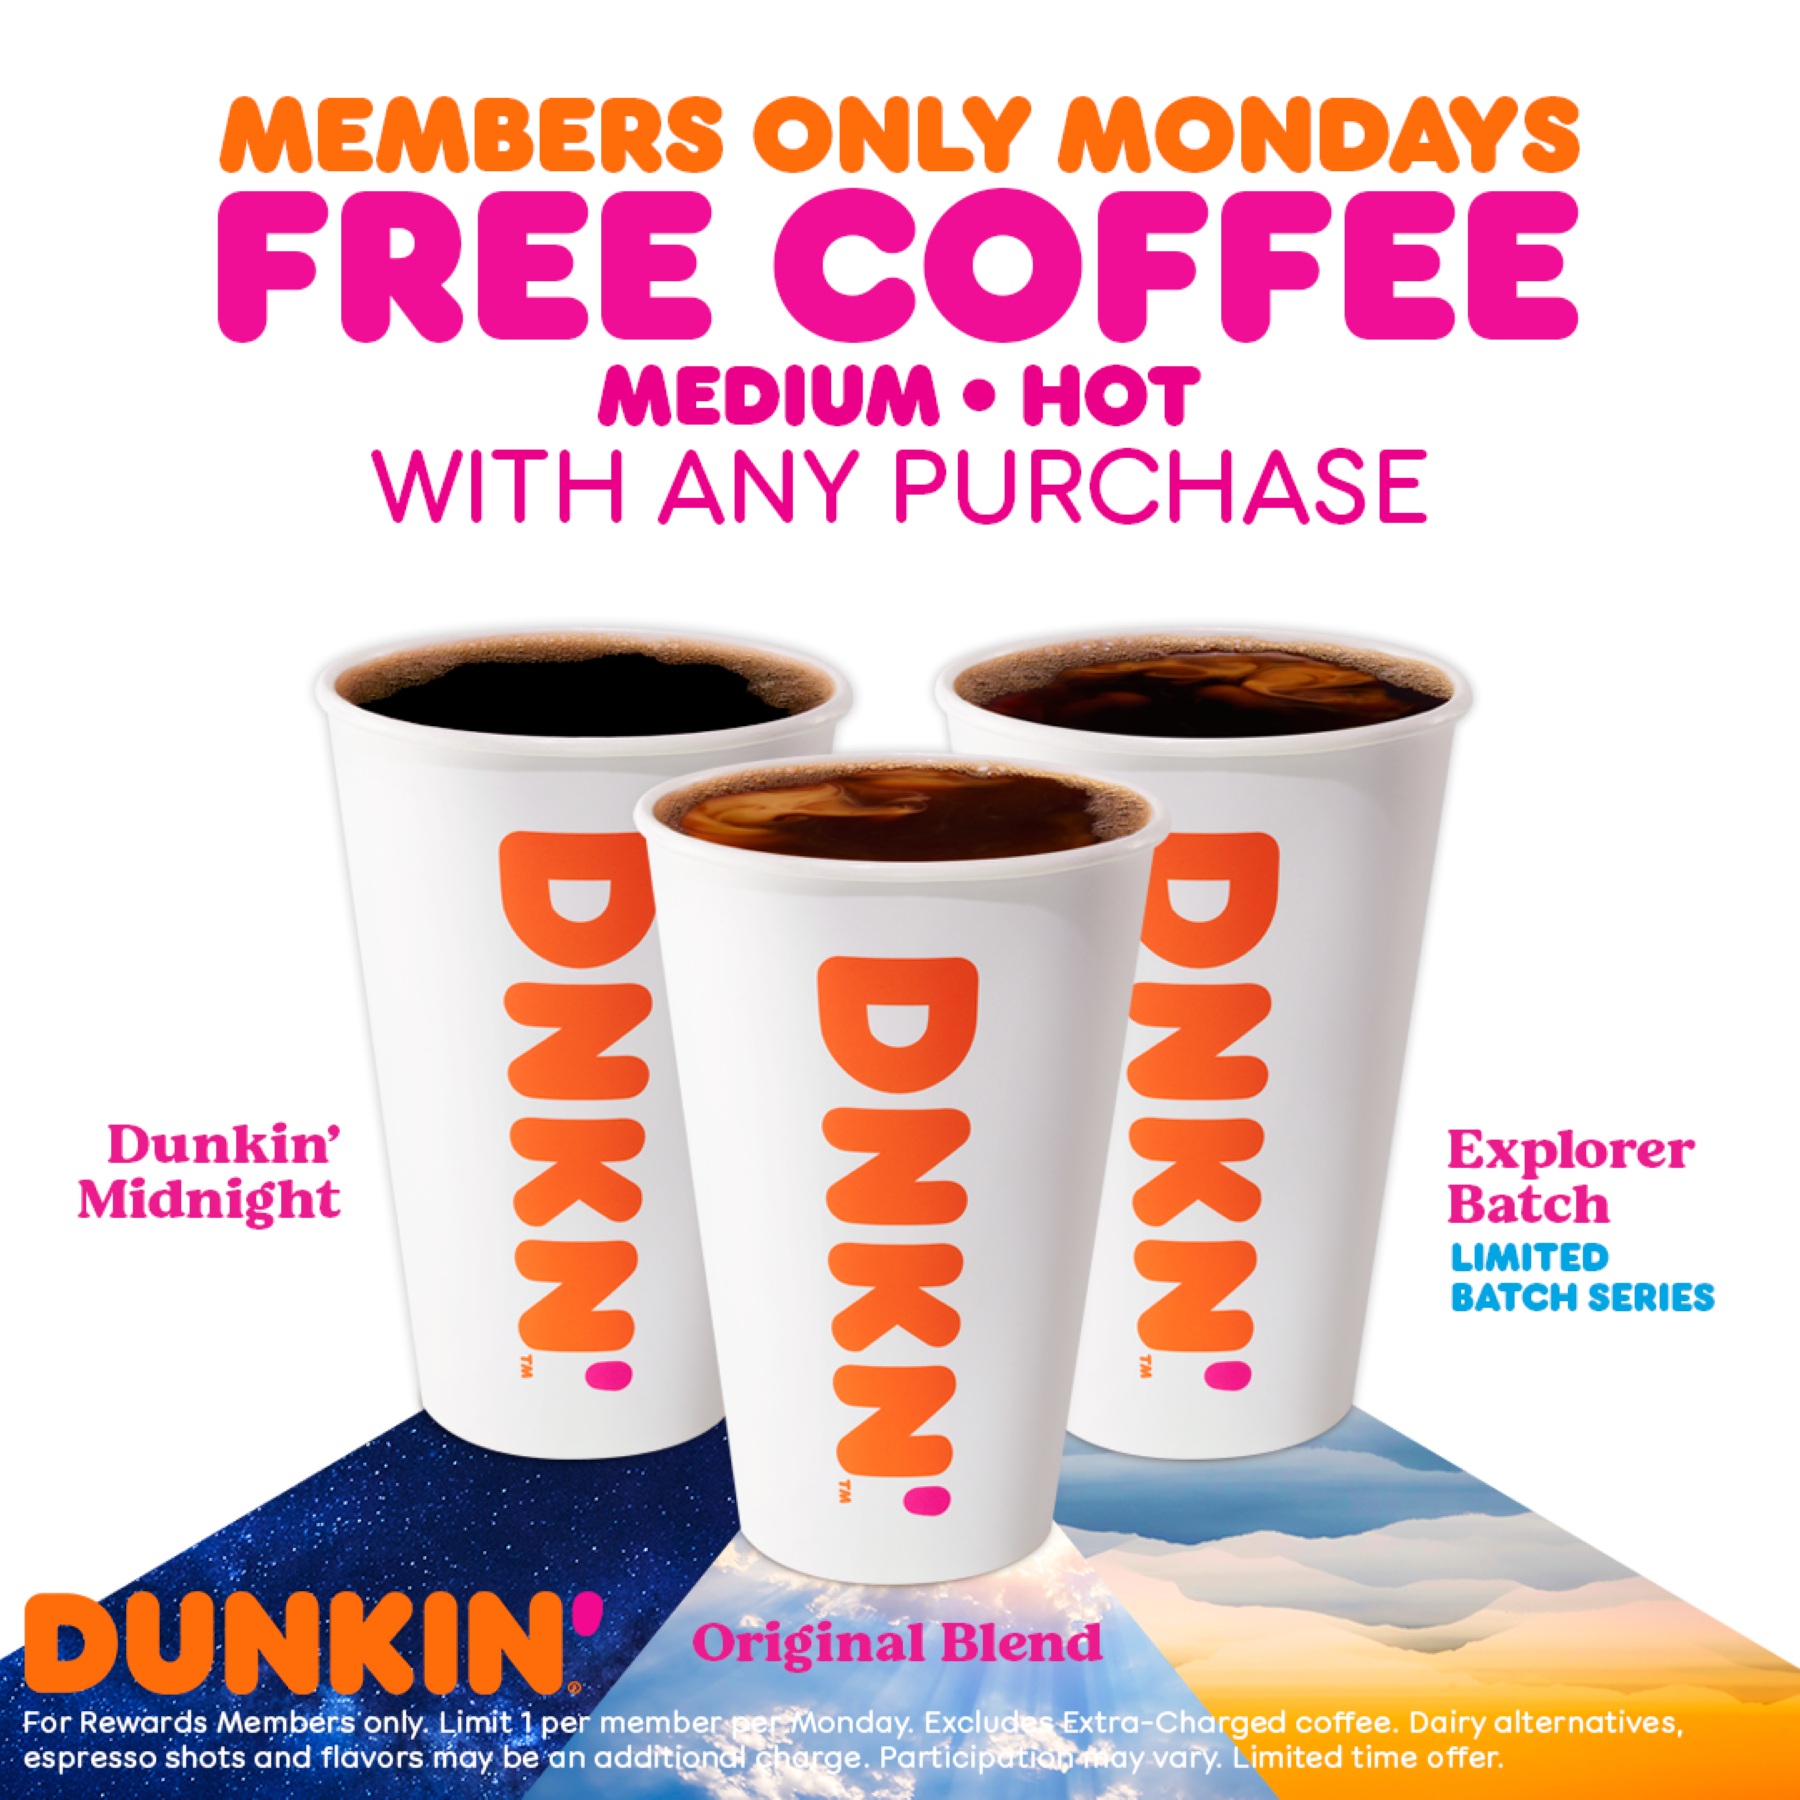 Three cups of Dunkin' coffee in an ad for free coffee Mondays.